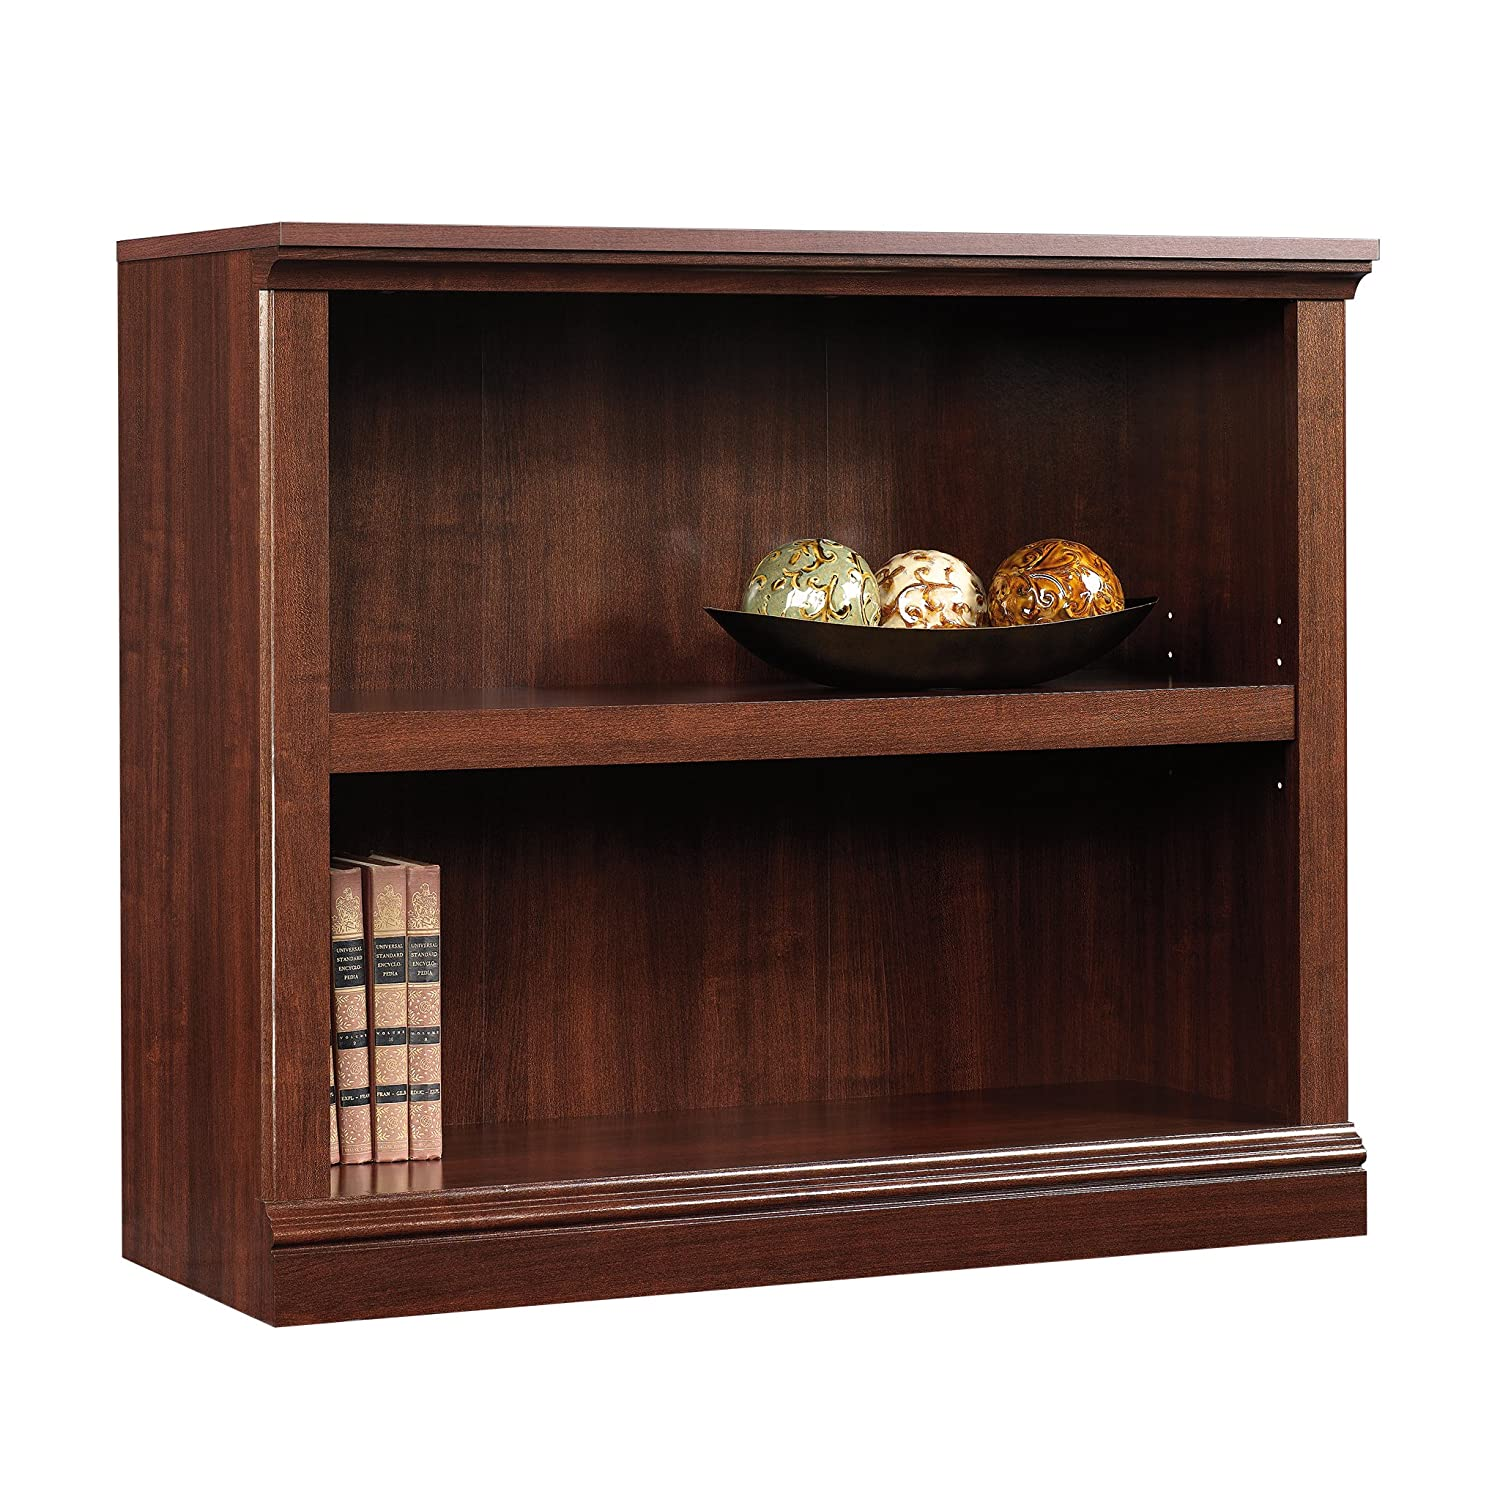 sauder 2 shelf bookcase select cherry finish kitchen